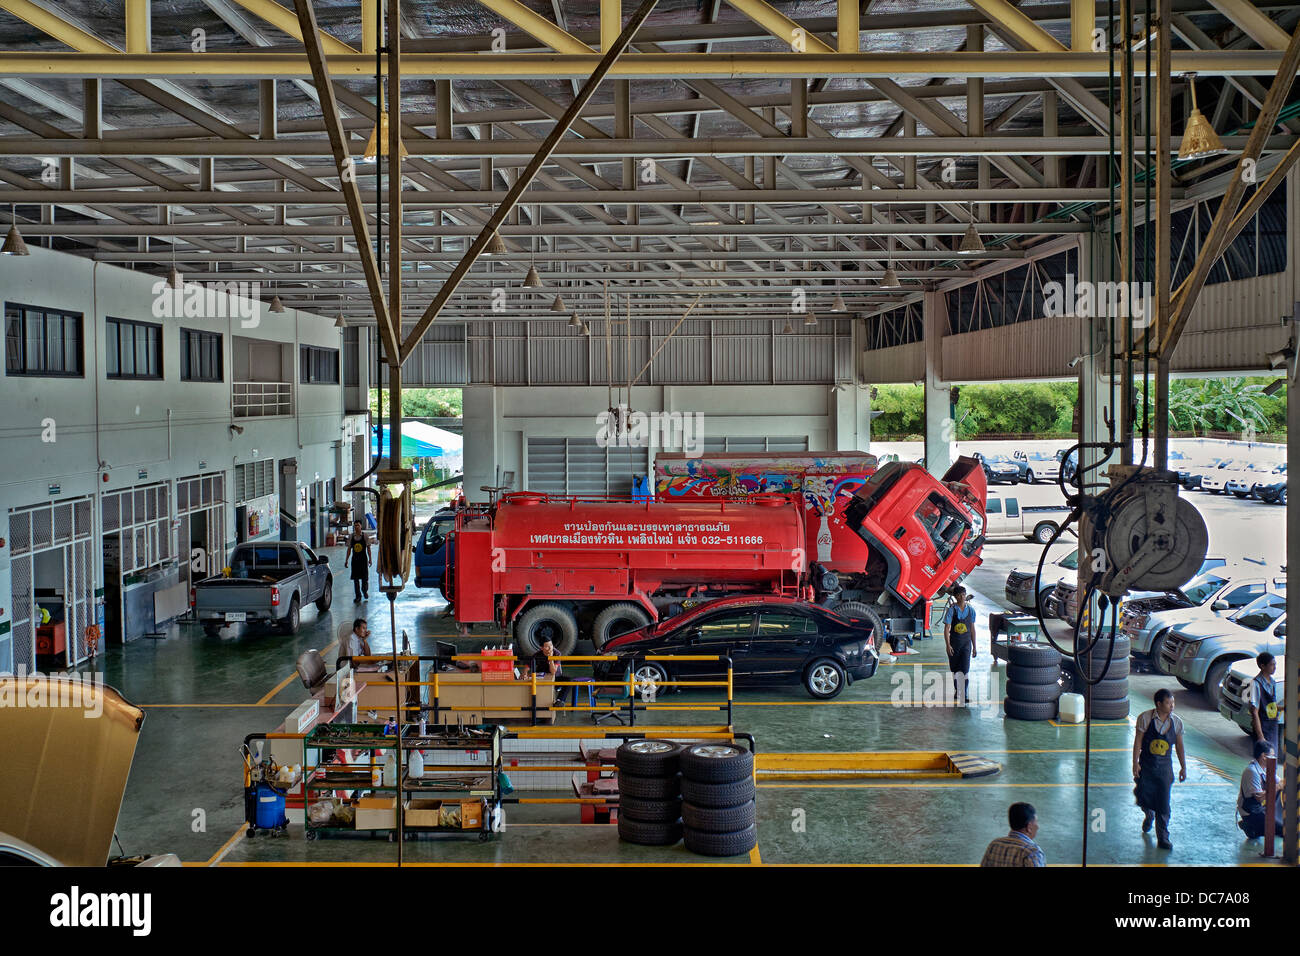 Truck Garage Stock Photos Amp Truck Garage Stock Images Alamy